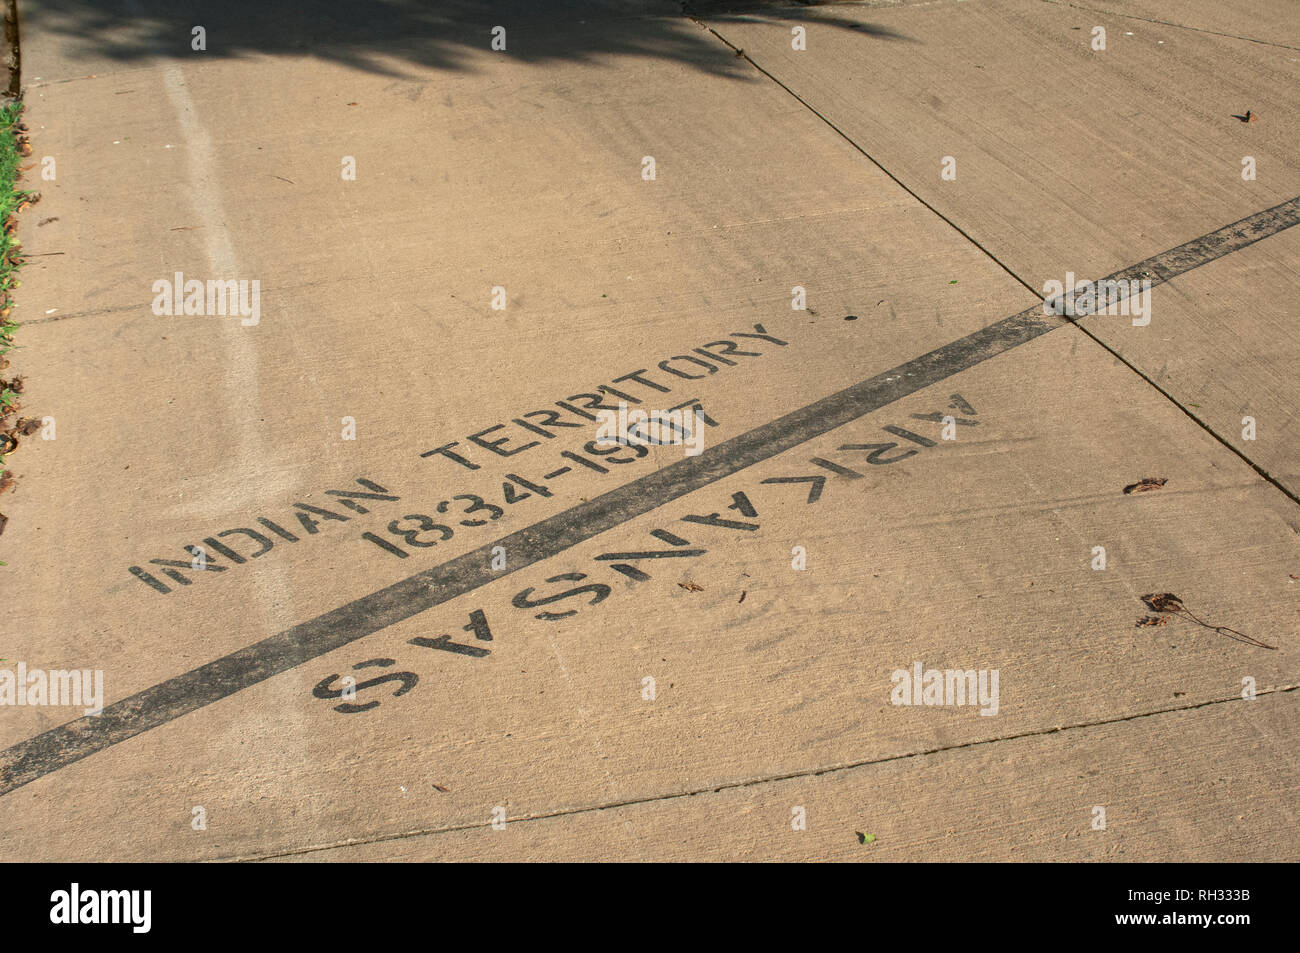 Original end of the Trail of Tears, Fort Smith National Historic Site, Arkansas. Digital photograph - Stock Image